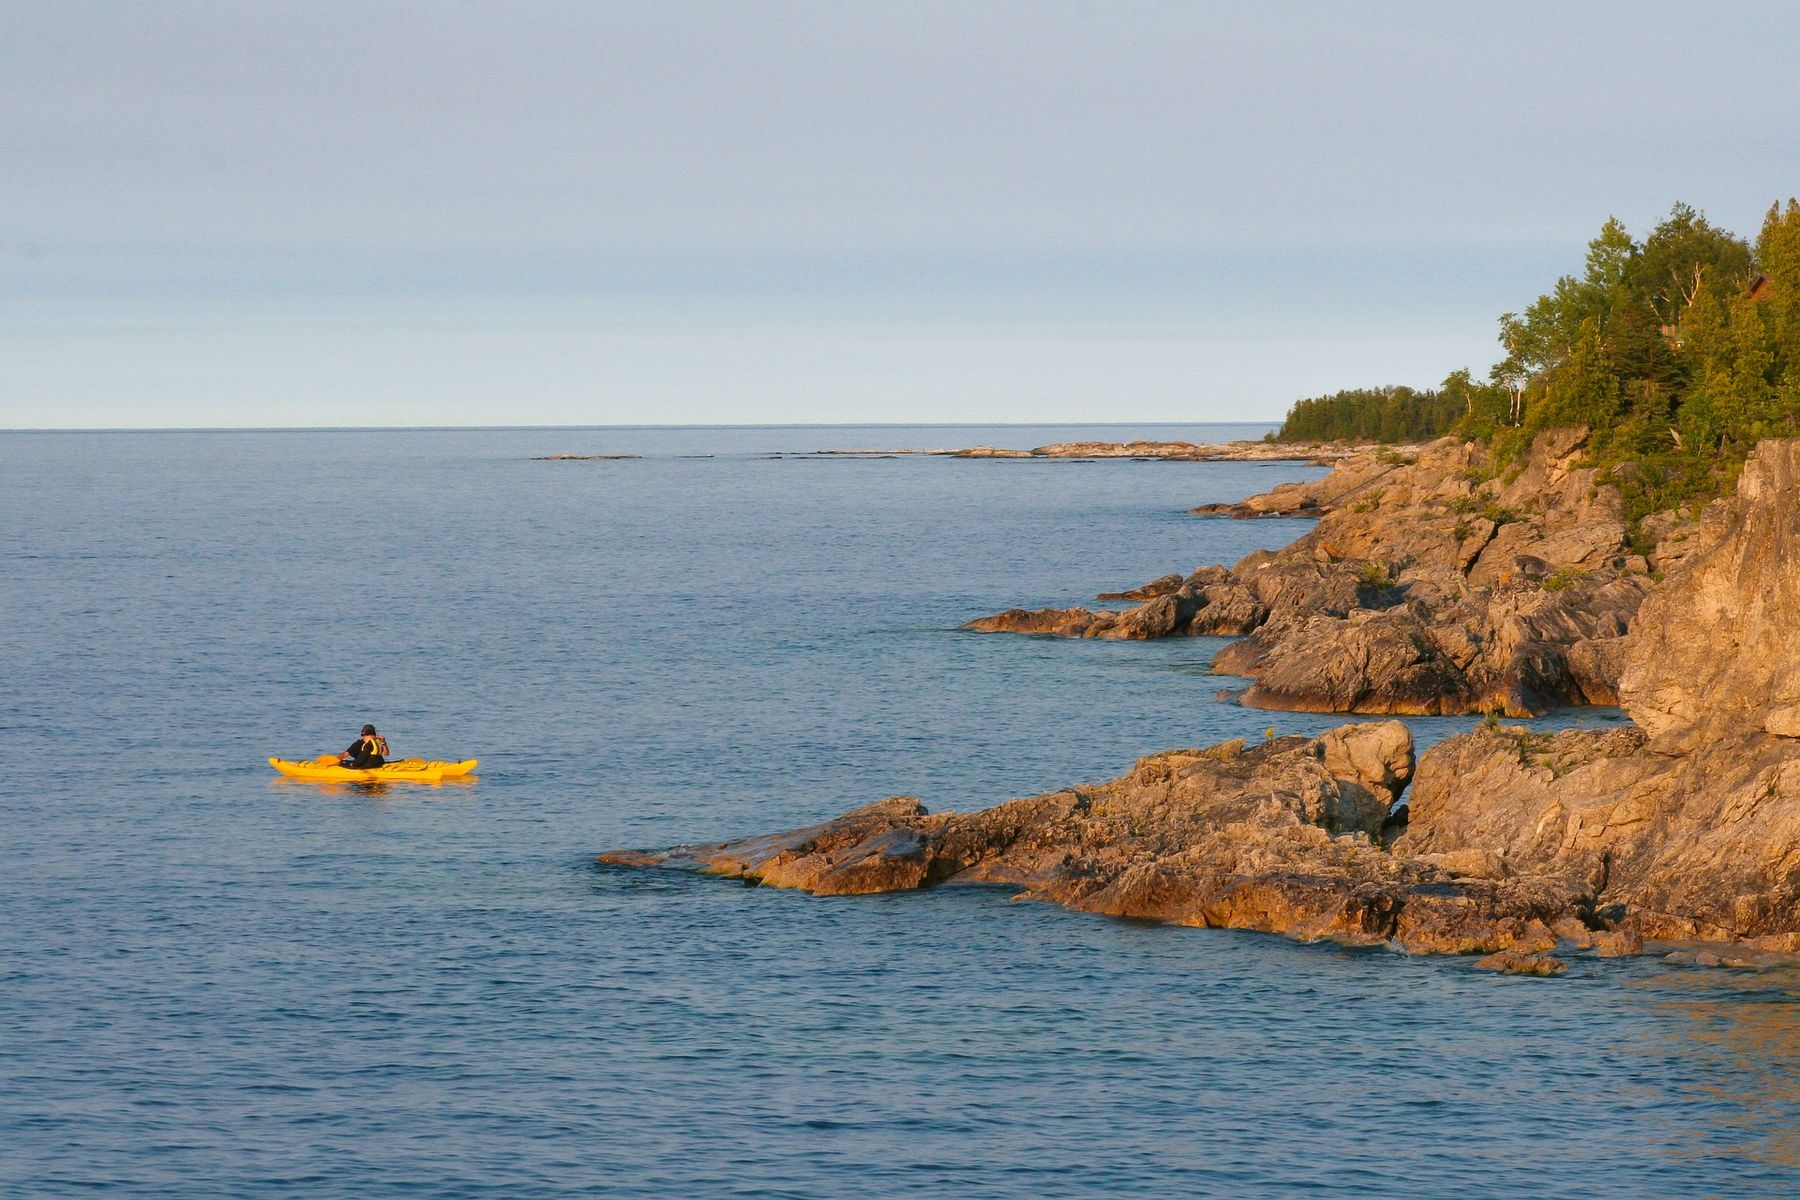 kayak in the water by the rocky shores of Georgian Bay, Ontario, around late afternoon